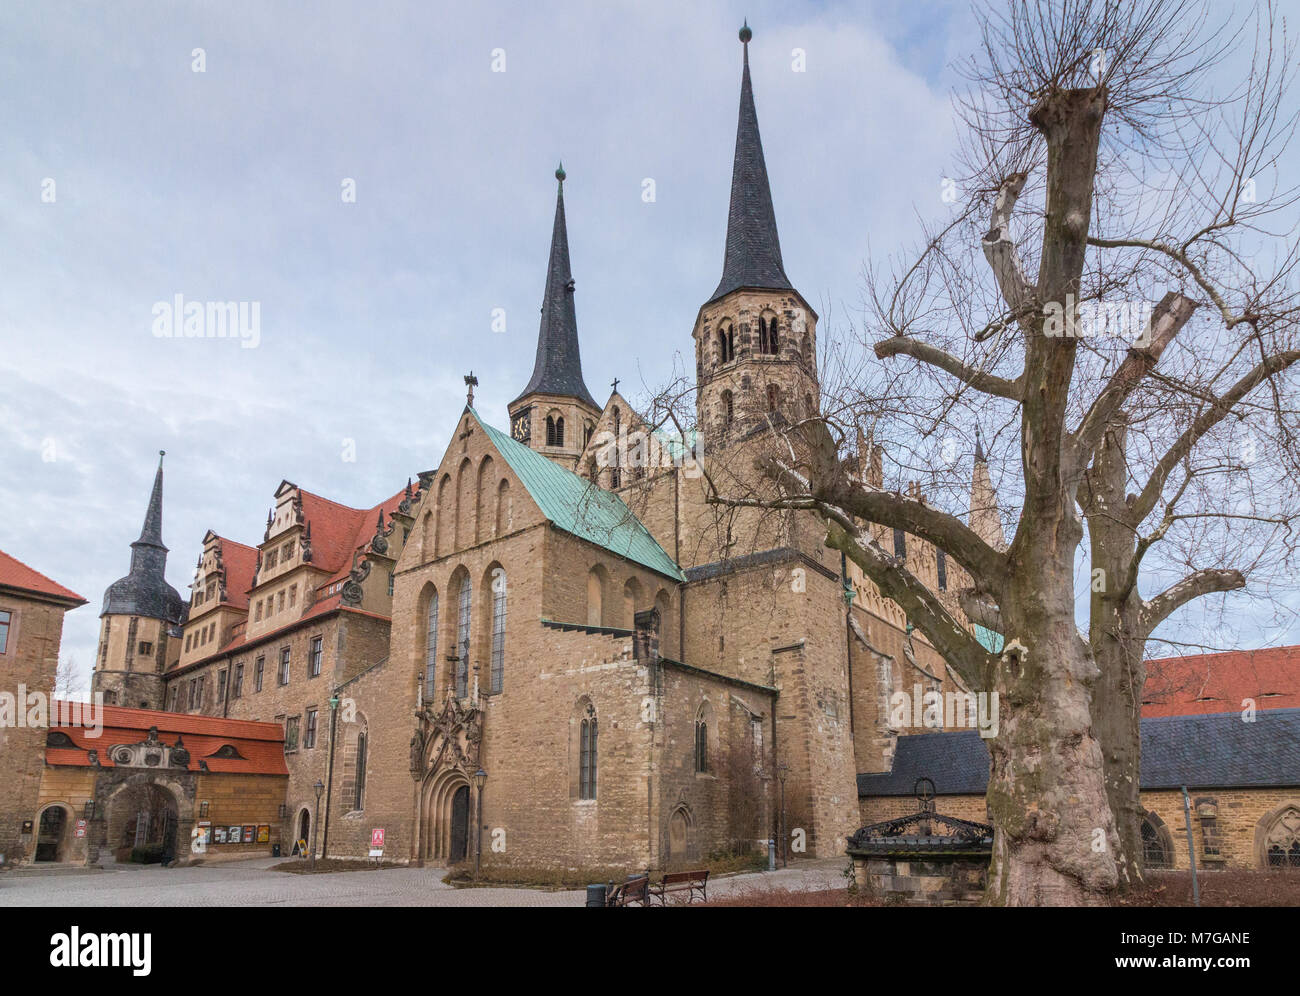 View of the Cathedral of the City of Merseburg, Germany - Stock Image